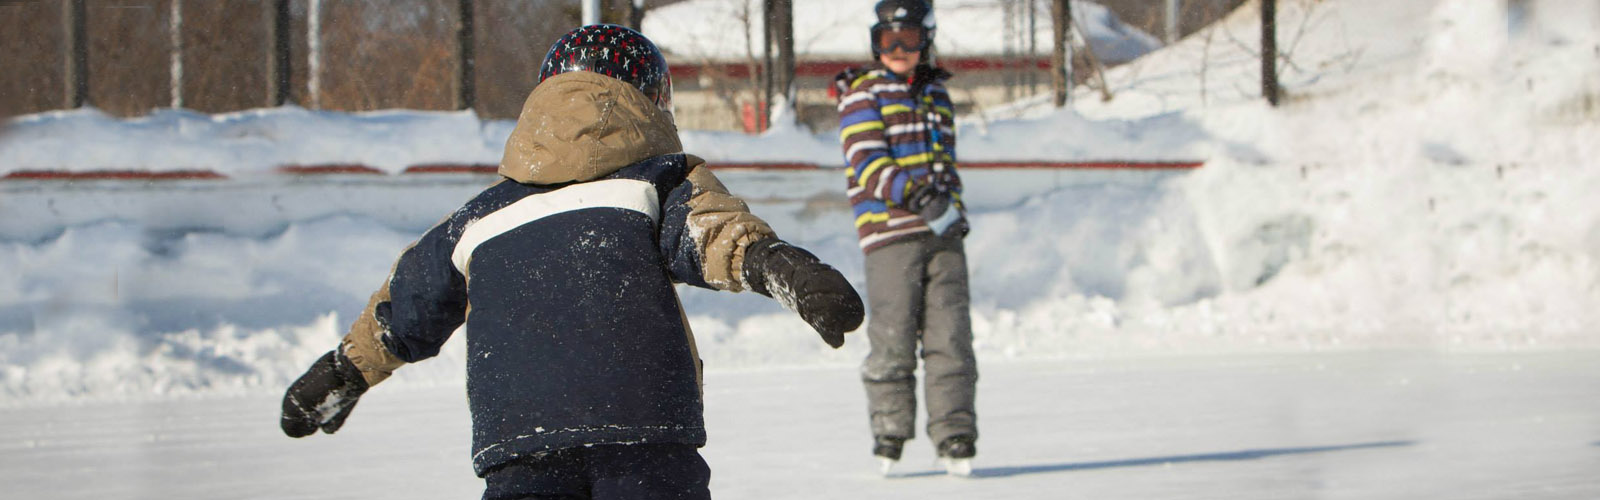 Boys on outdoor rink